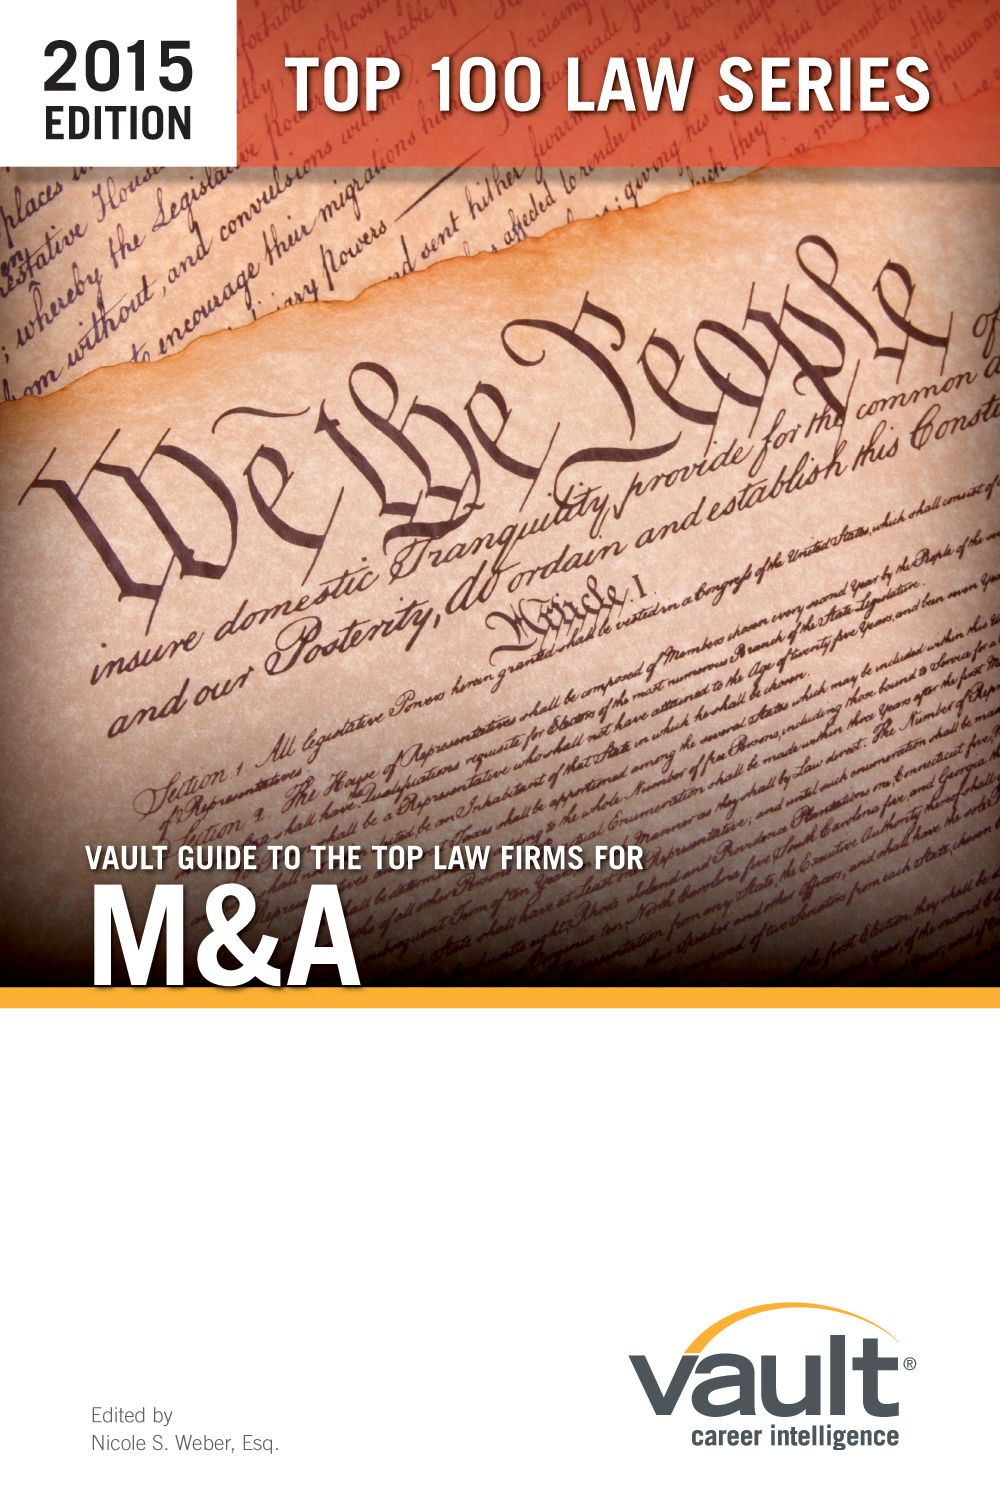 Vault Guide to the Top Law Firms for M&A, 2015 Edition